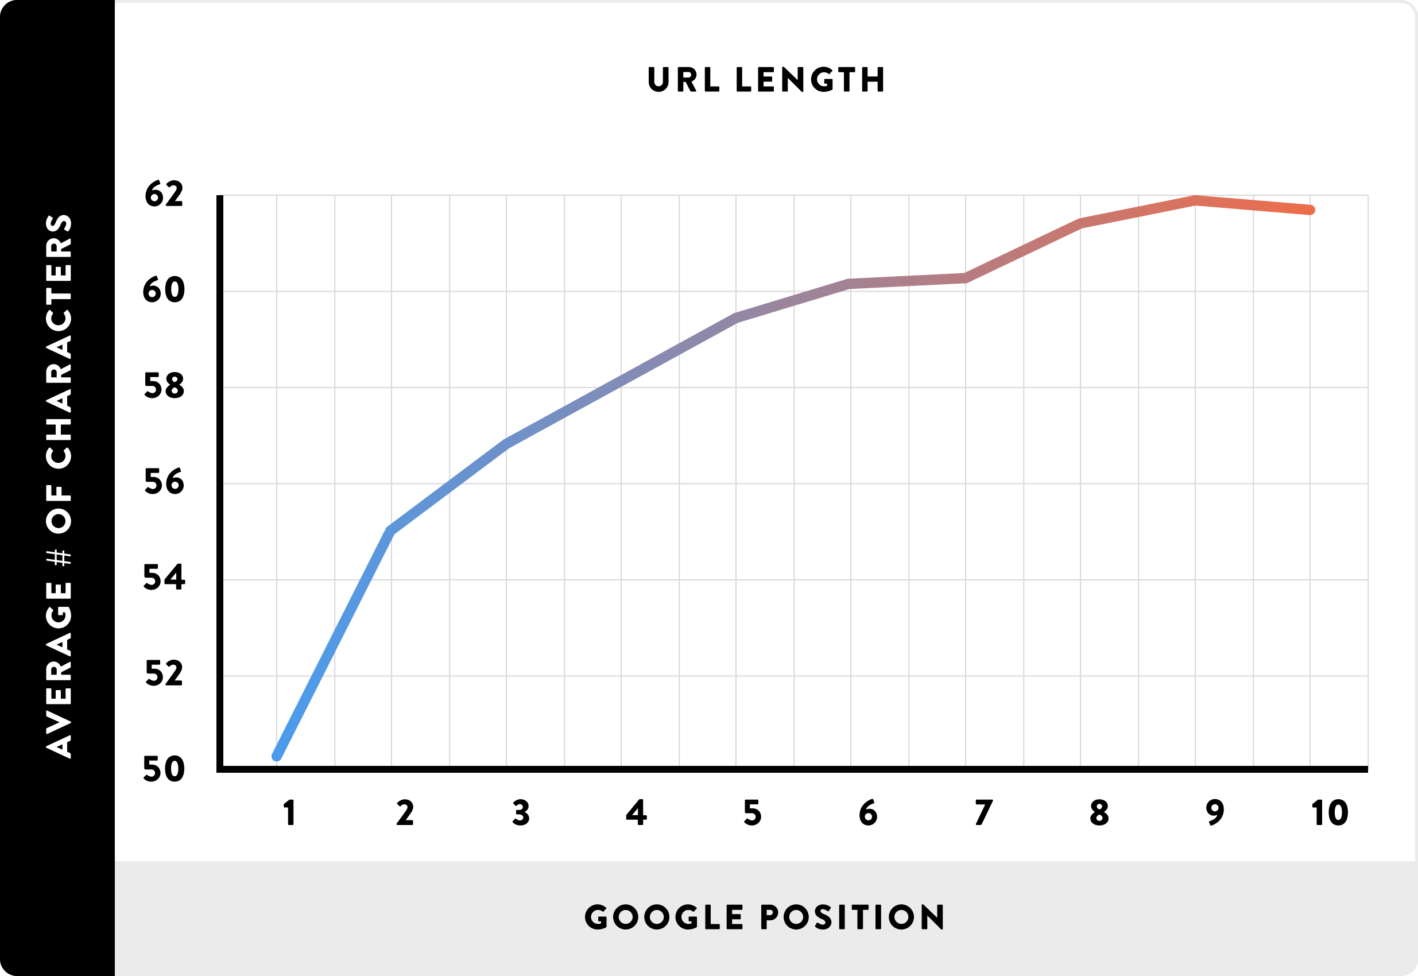 URL Length will drive more traffic